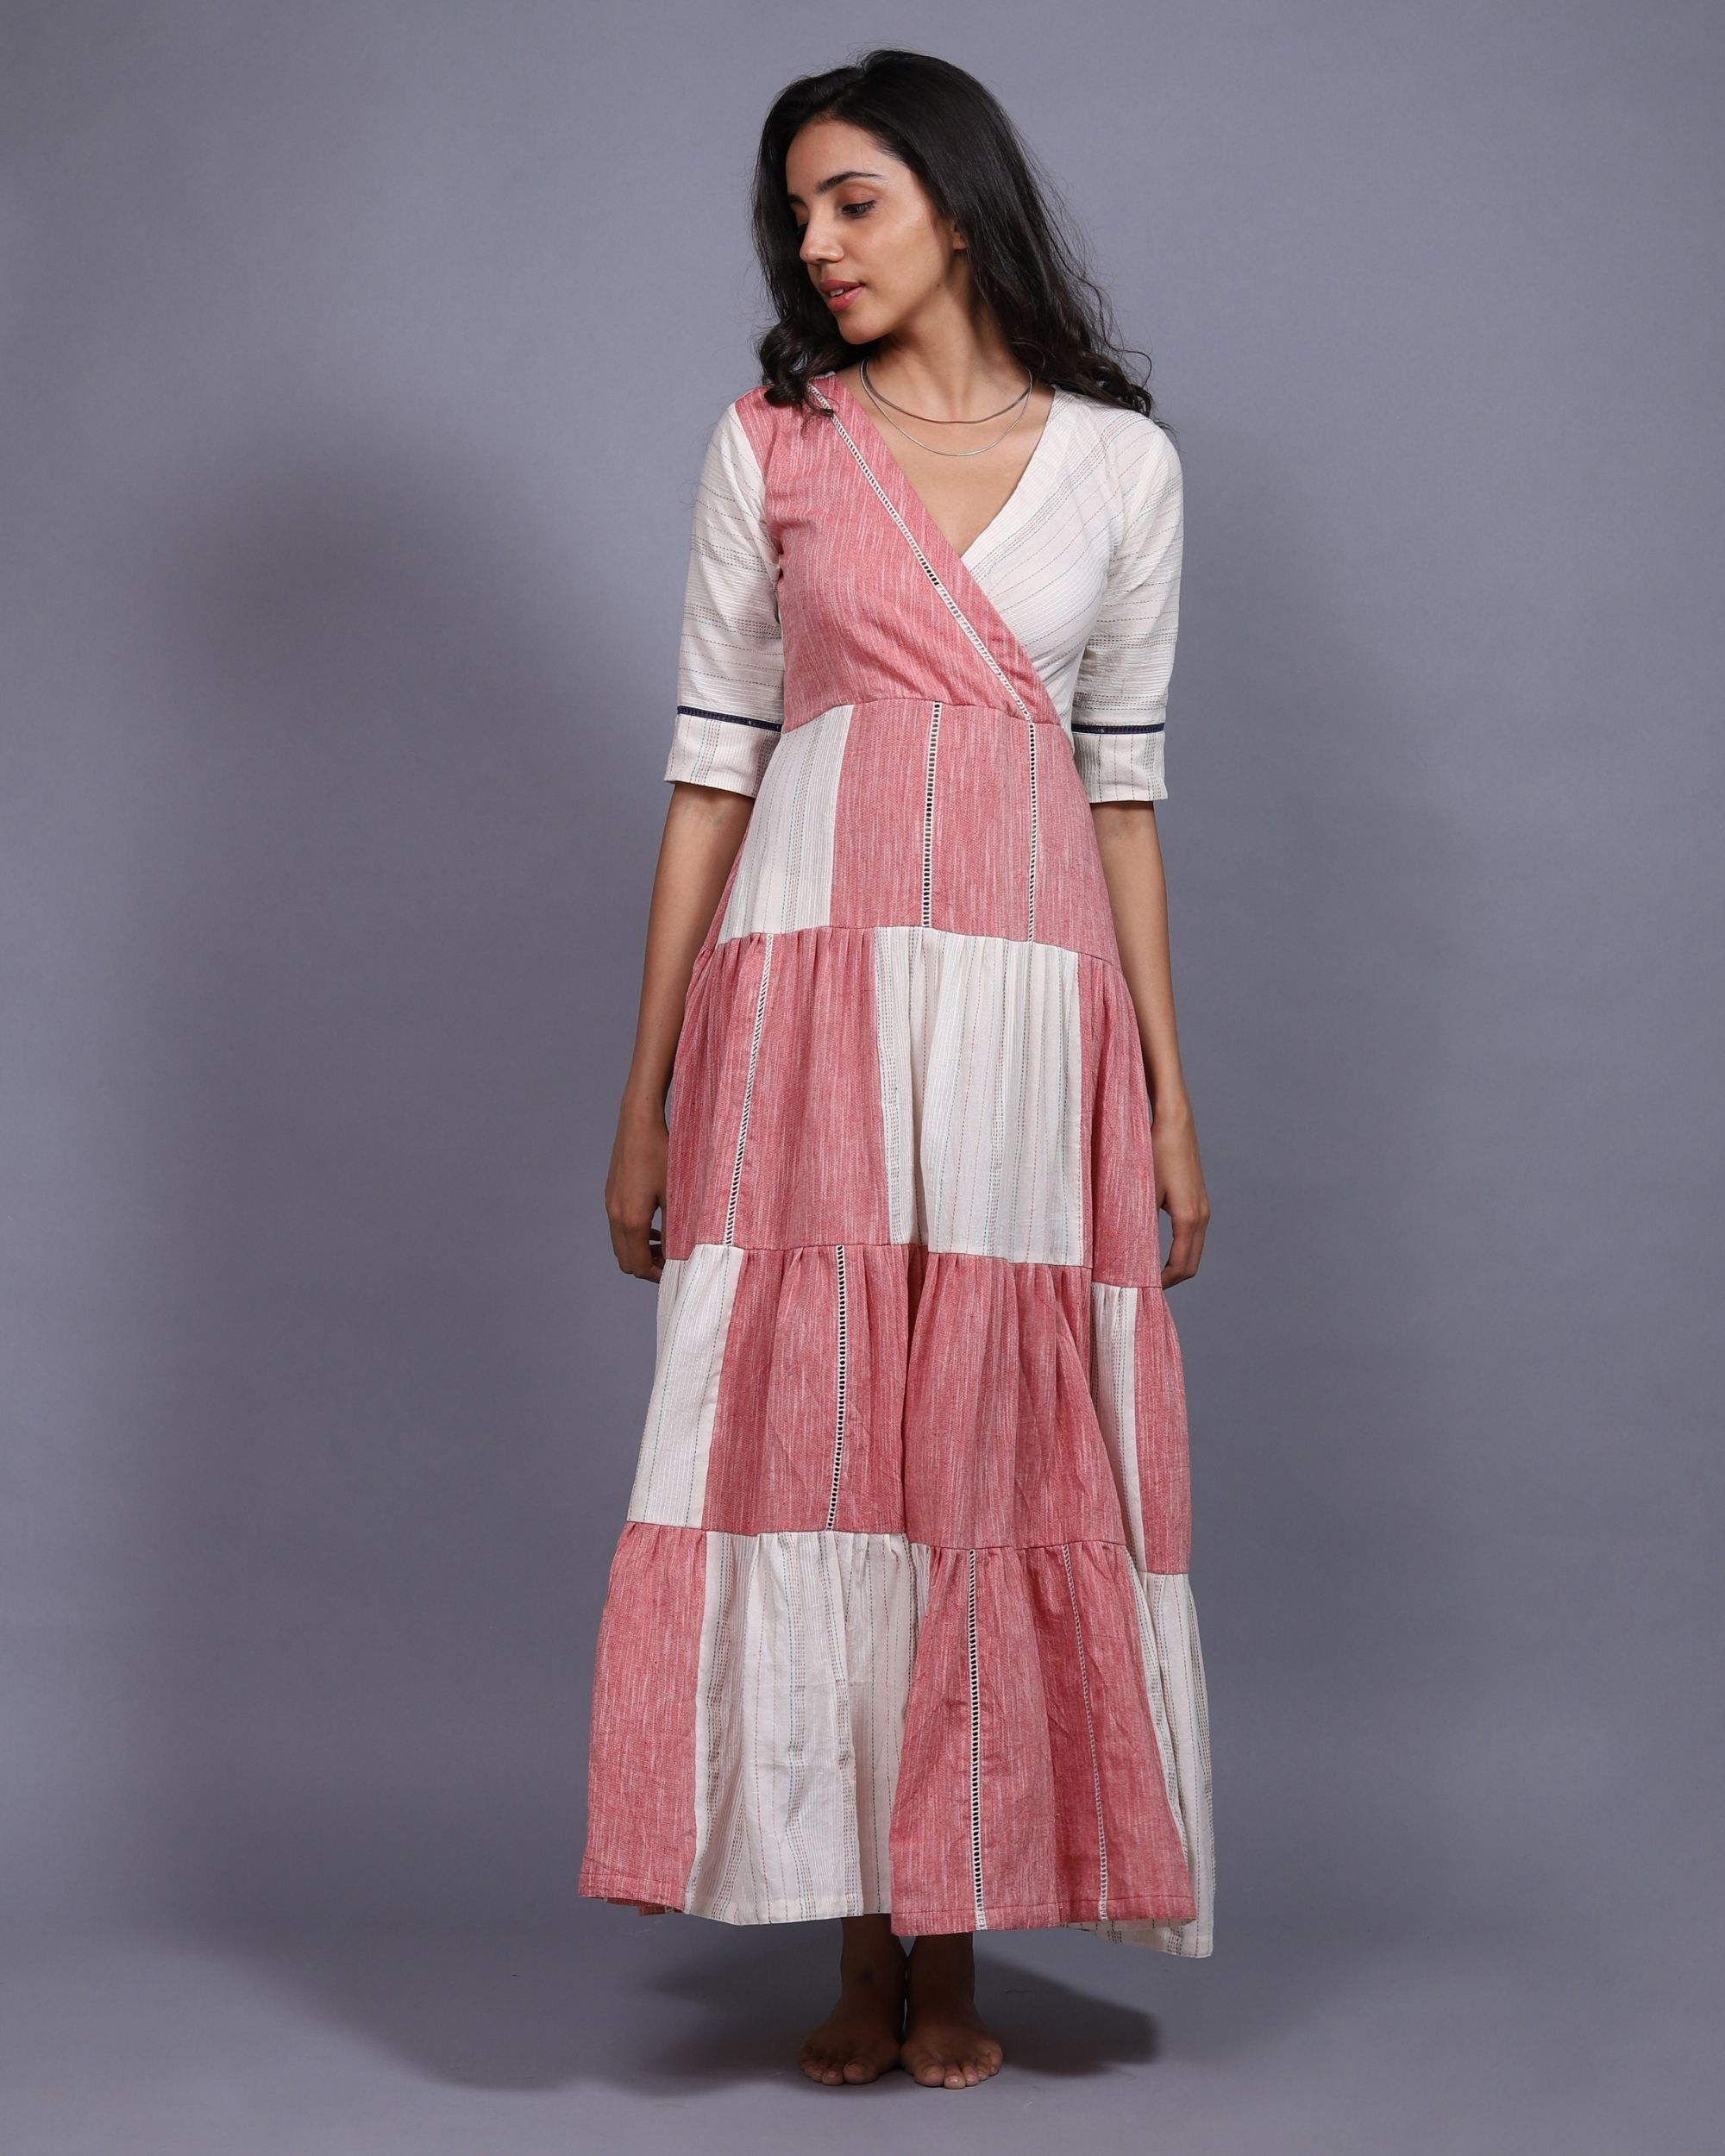 Patch tier dress with a slip - set of two